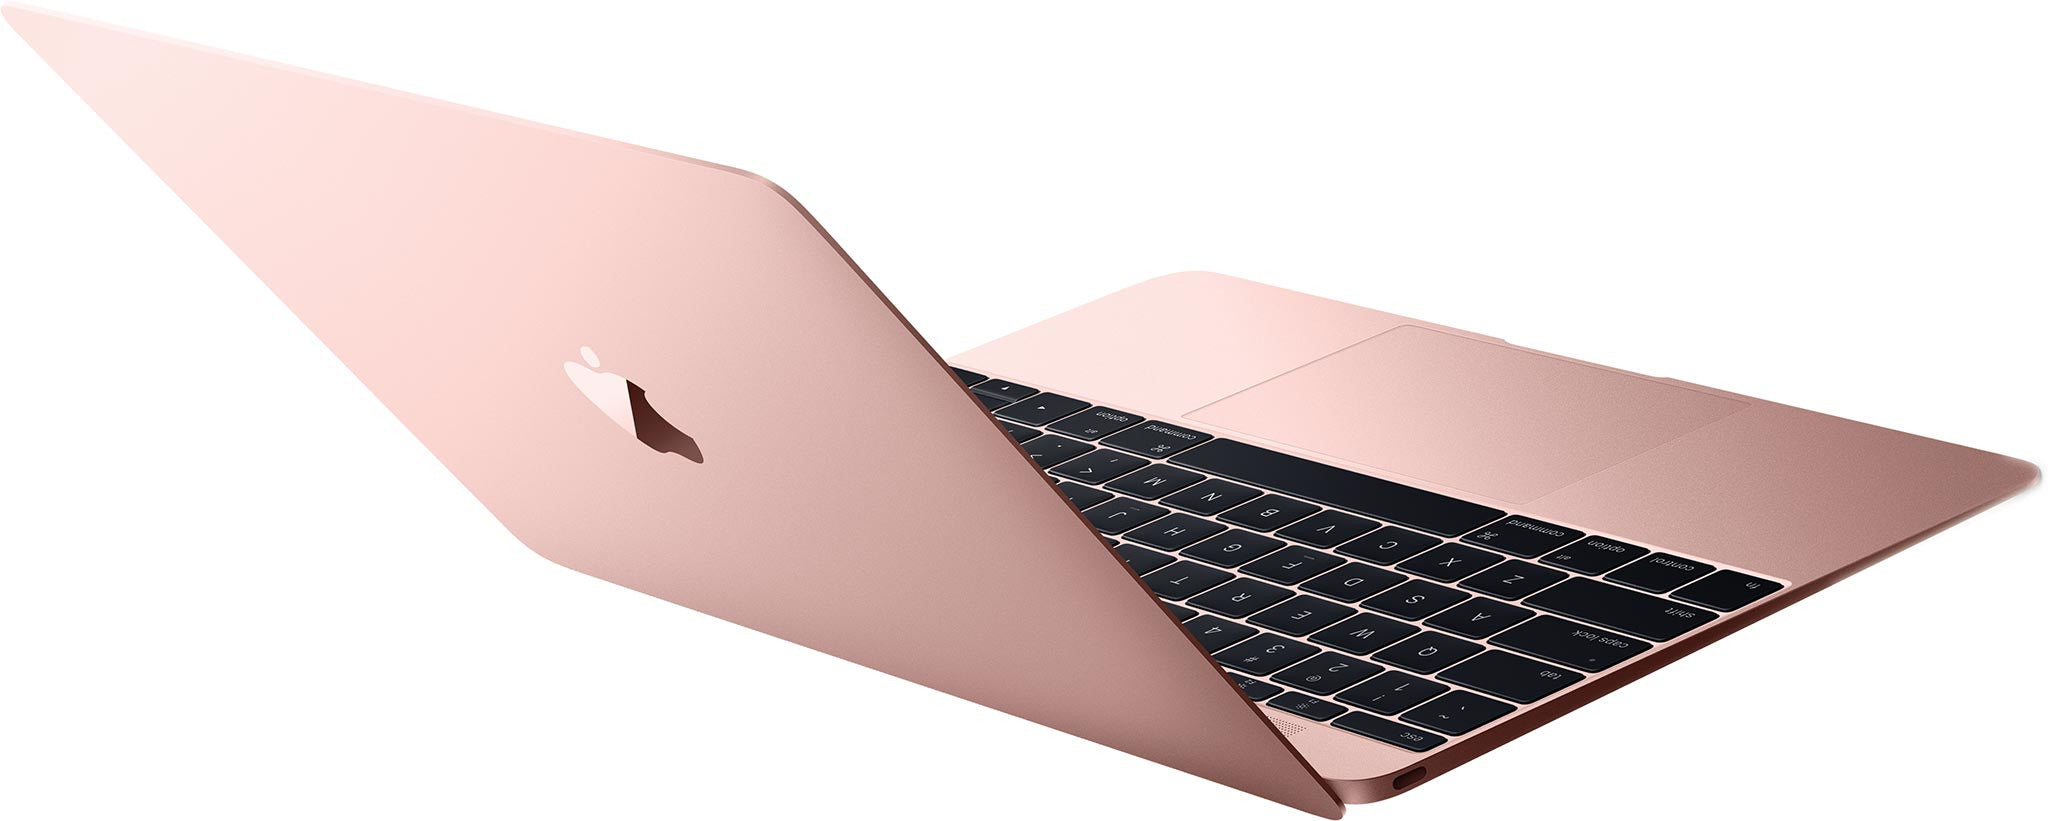 Better Macbook, now in pink